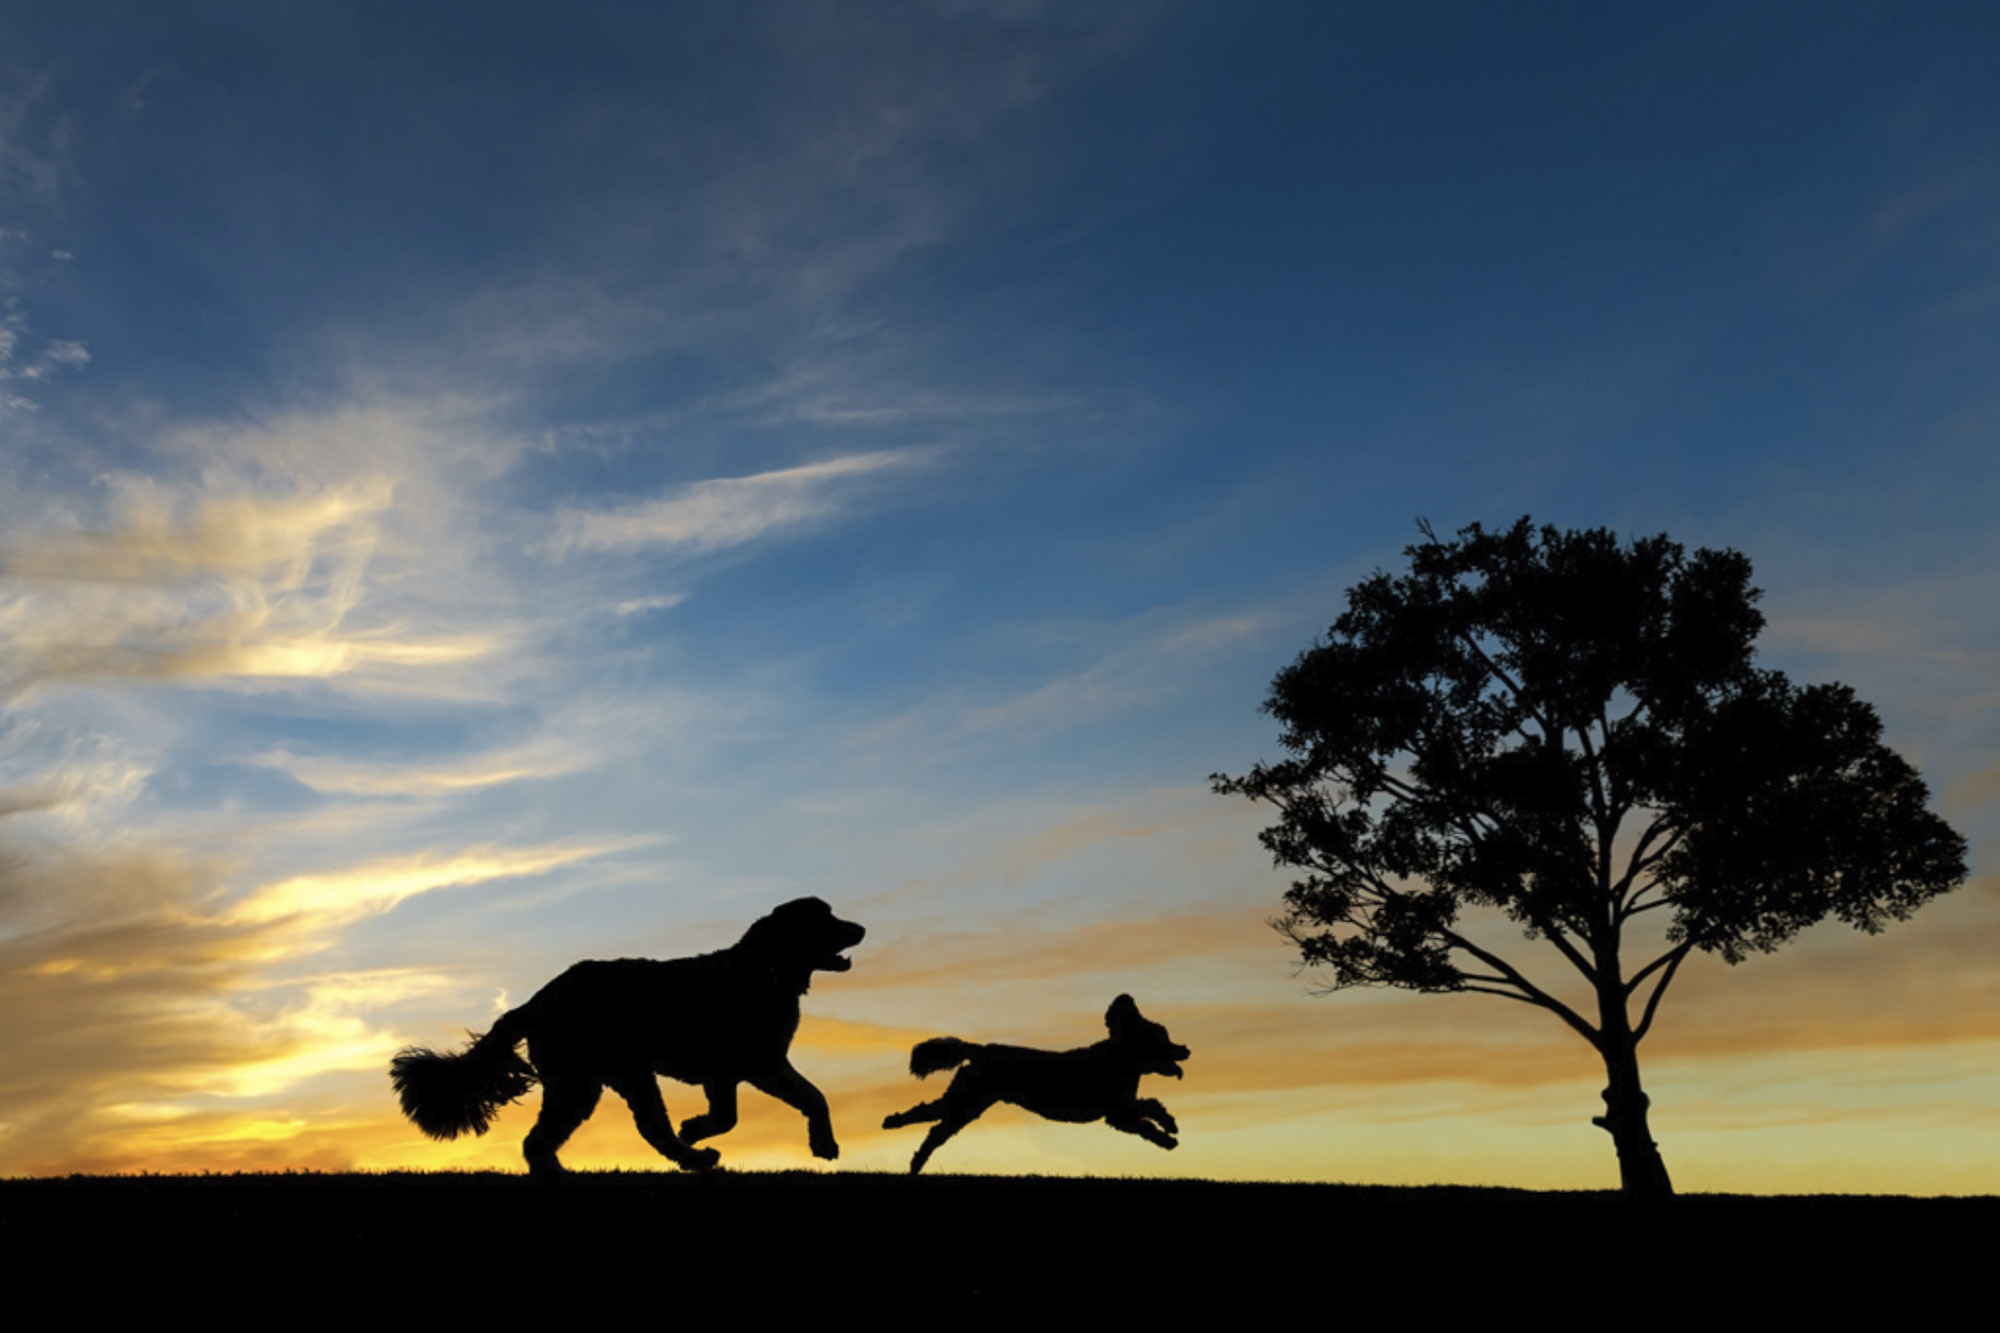 Charlotte-sunset-silhouette-retriever-poodle